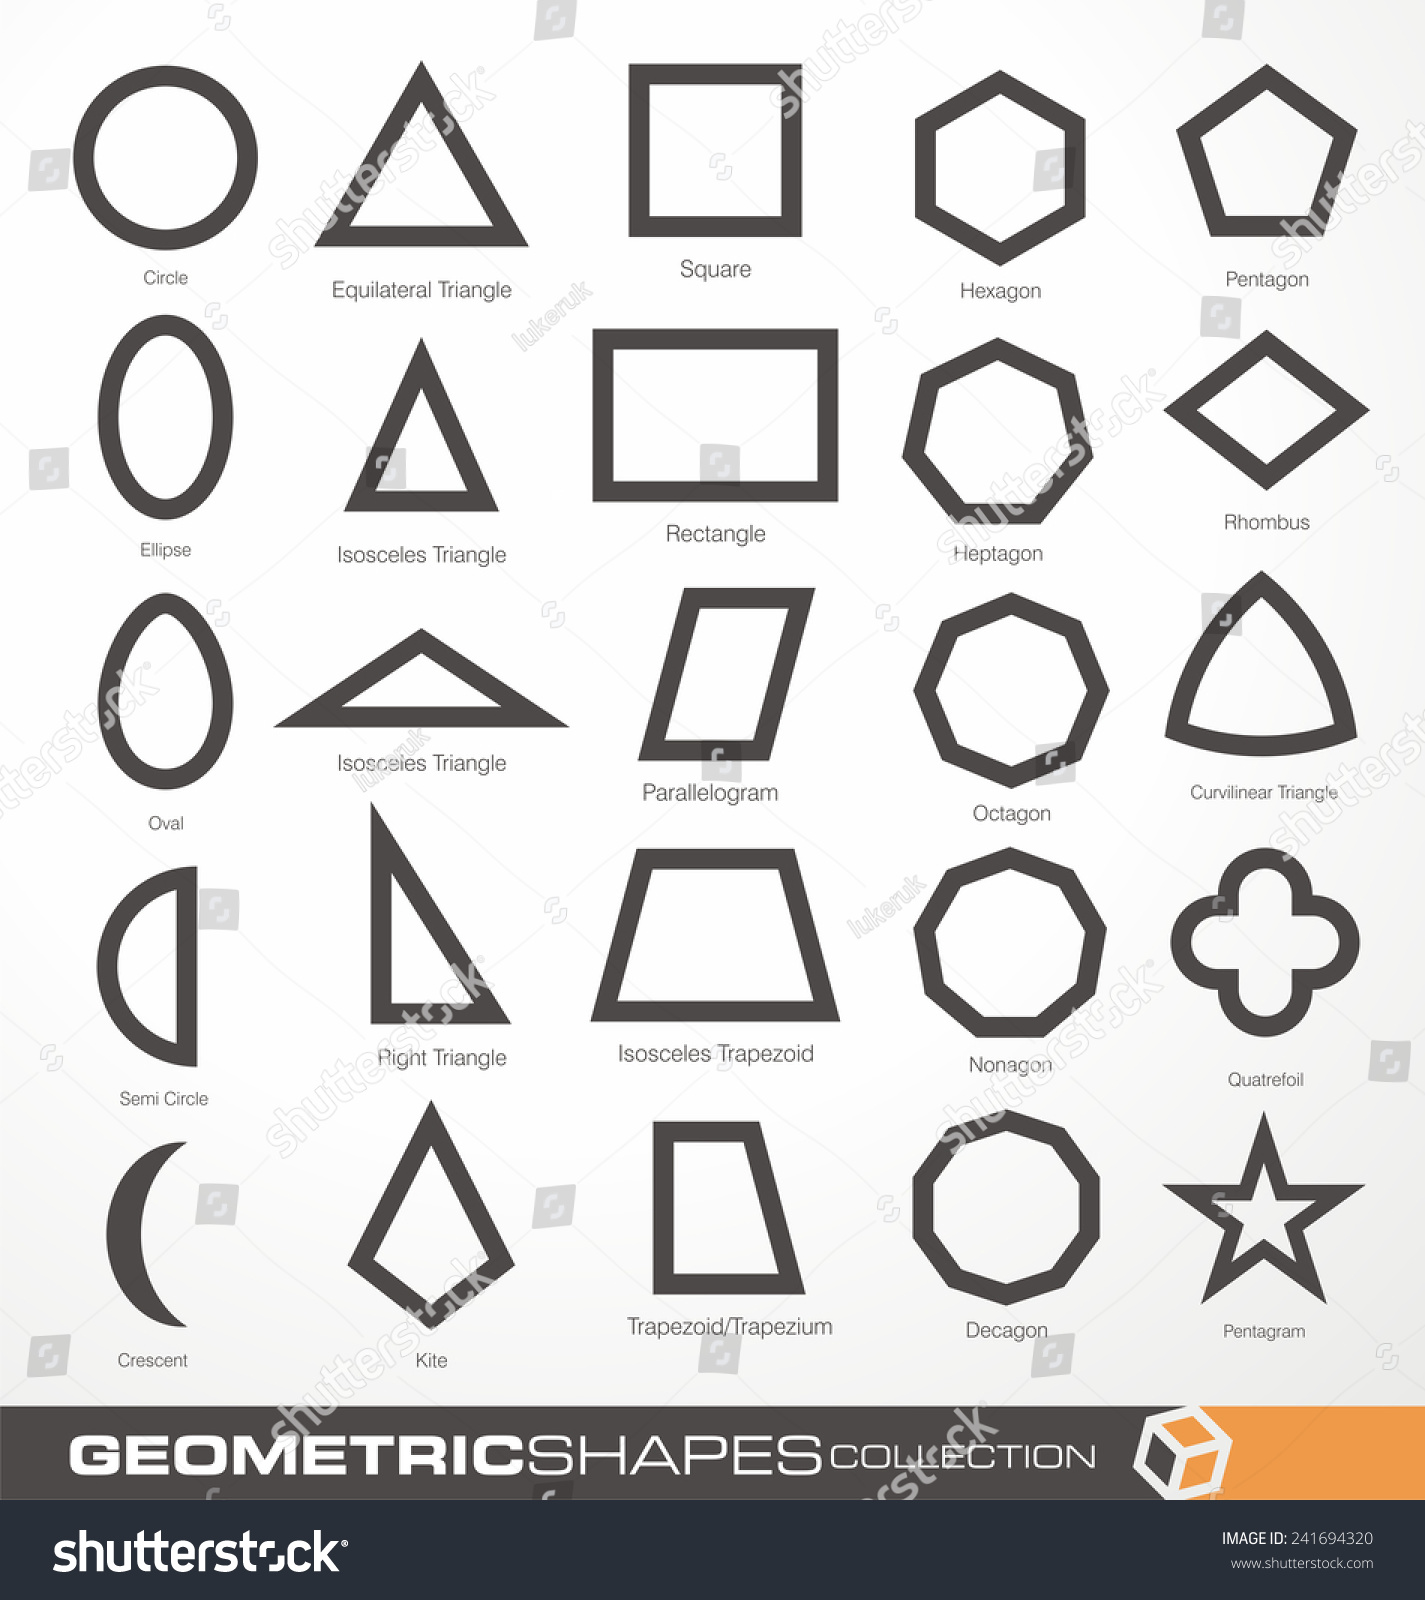 Worksheet Shapes Geometry set geometric shapes education science theme stock vector of and design elements collection